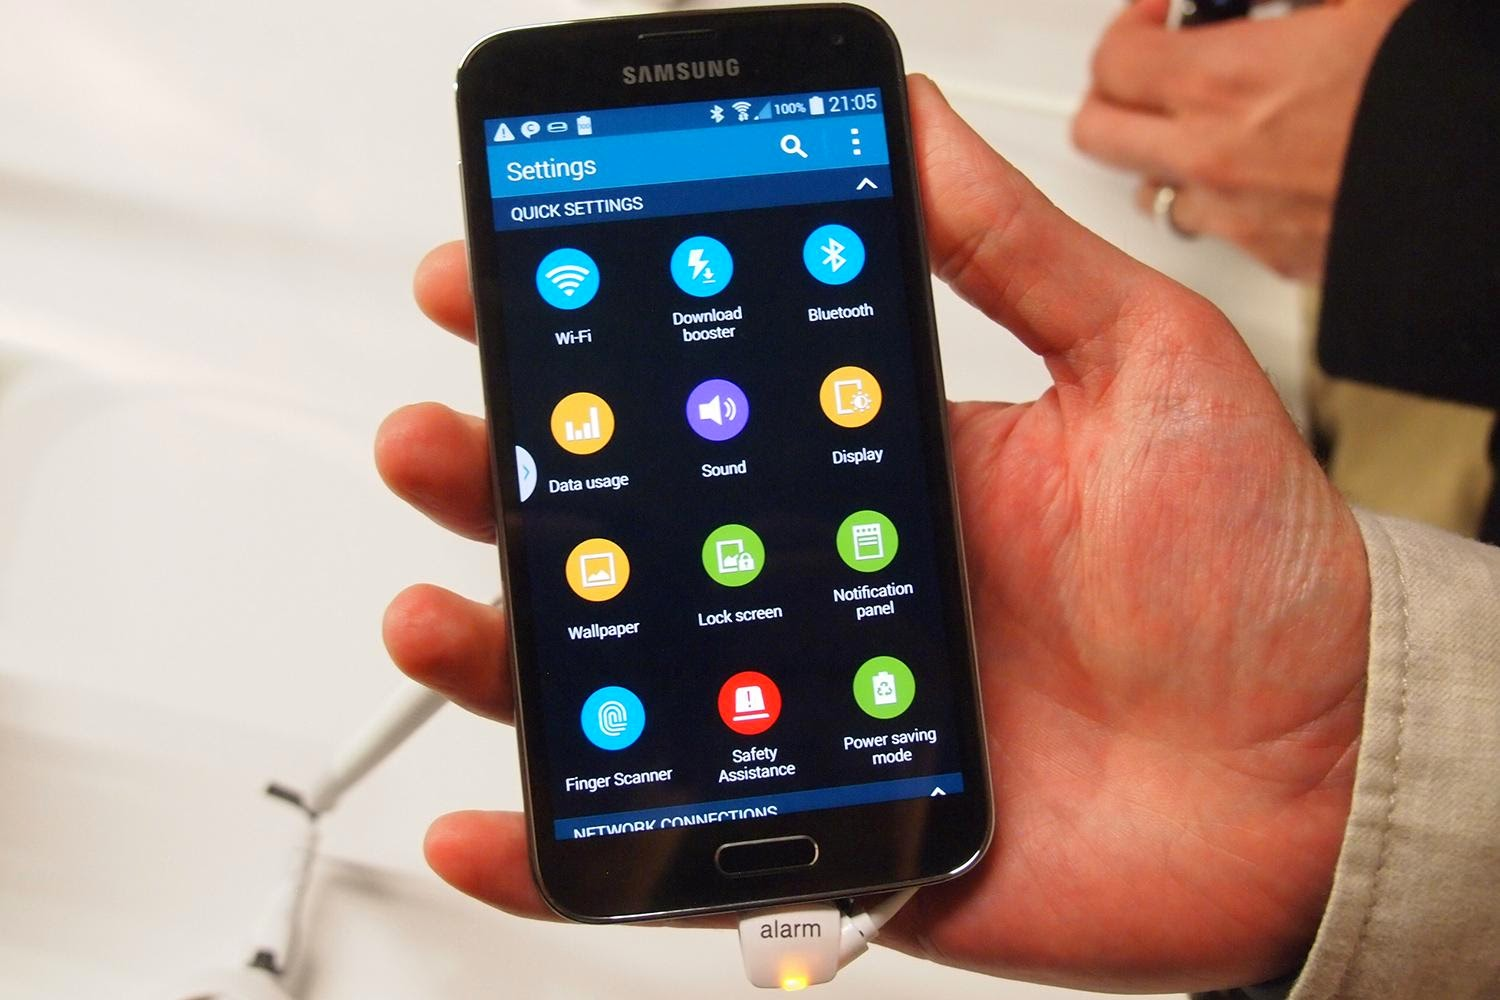 Phone How To Delete Contacts From An Android Phone full specification how to delete contacts from samsung galaxy s6 s6s6 edge permanently